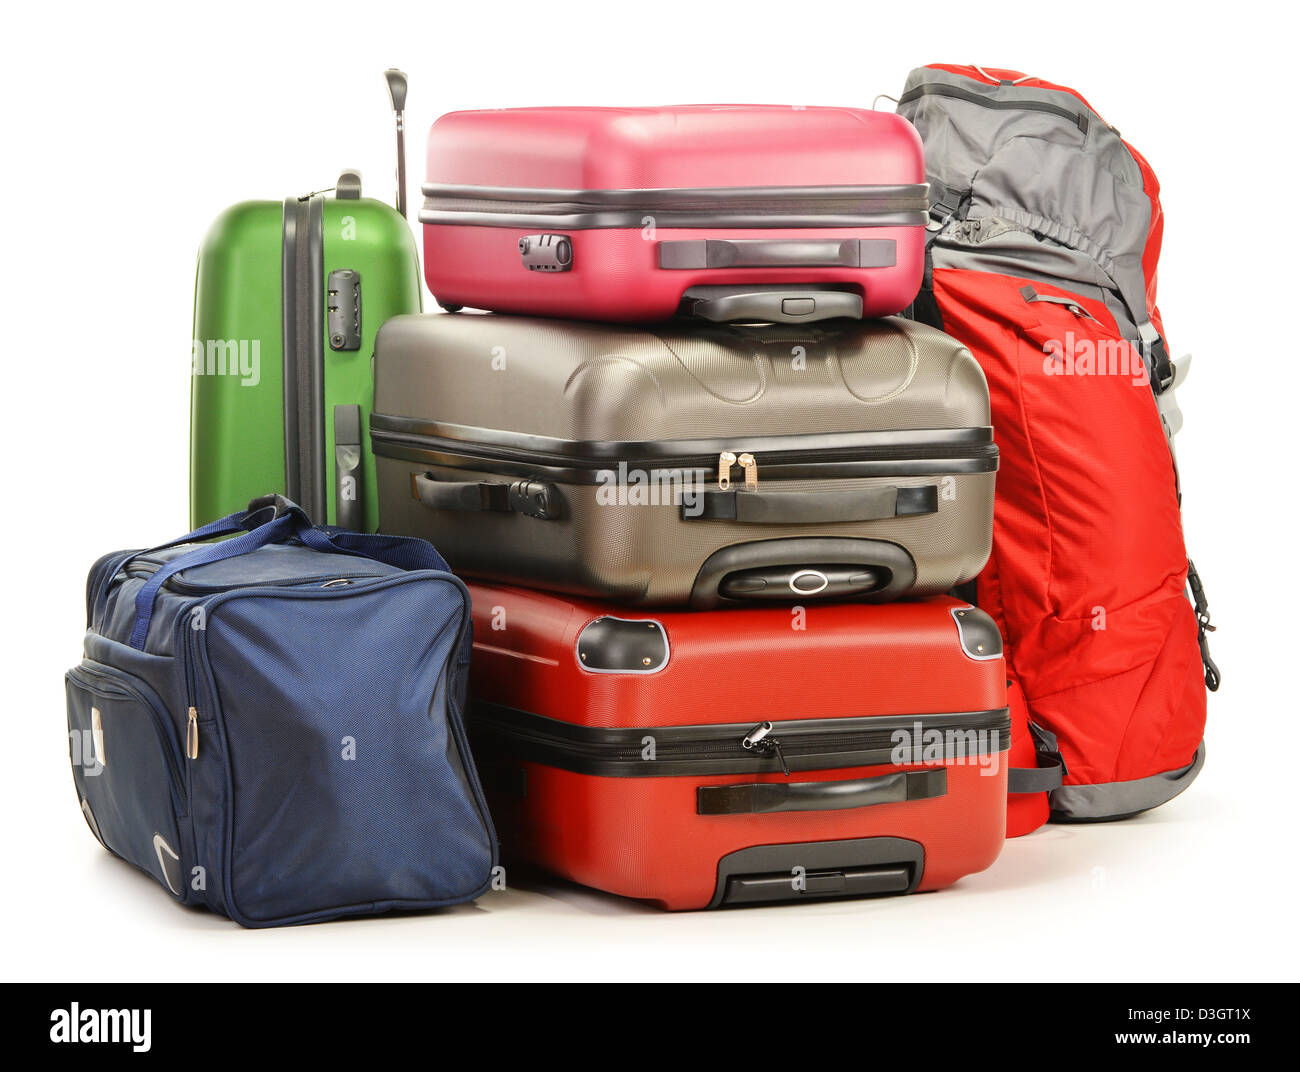 Luggage consisting of backpack, suitcases and large travel bag isolated on white background - Stock Image